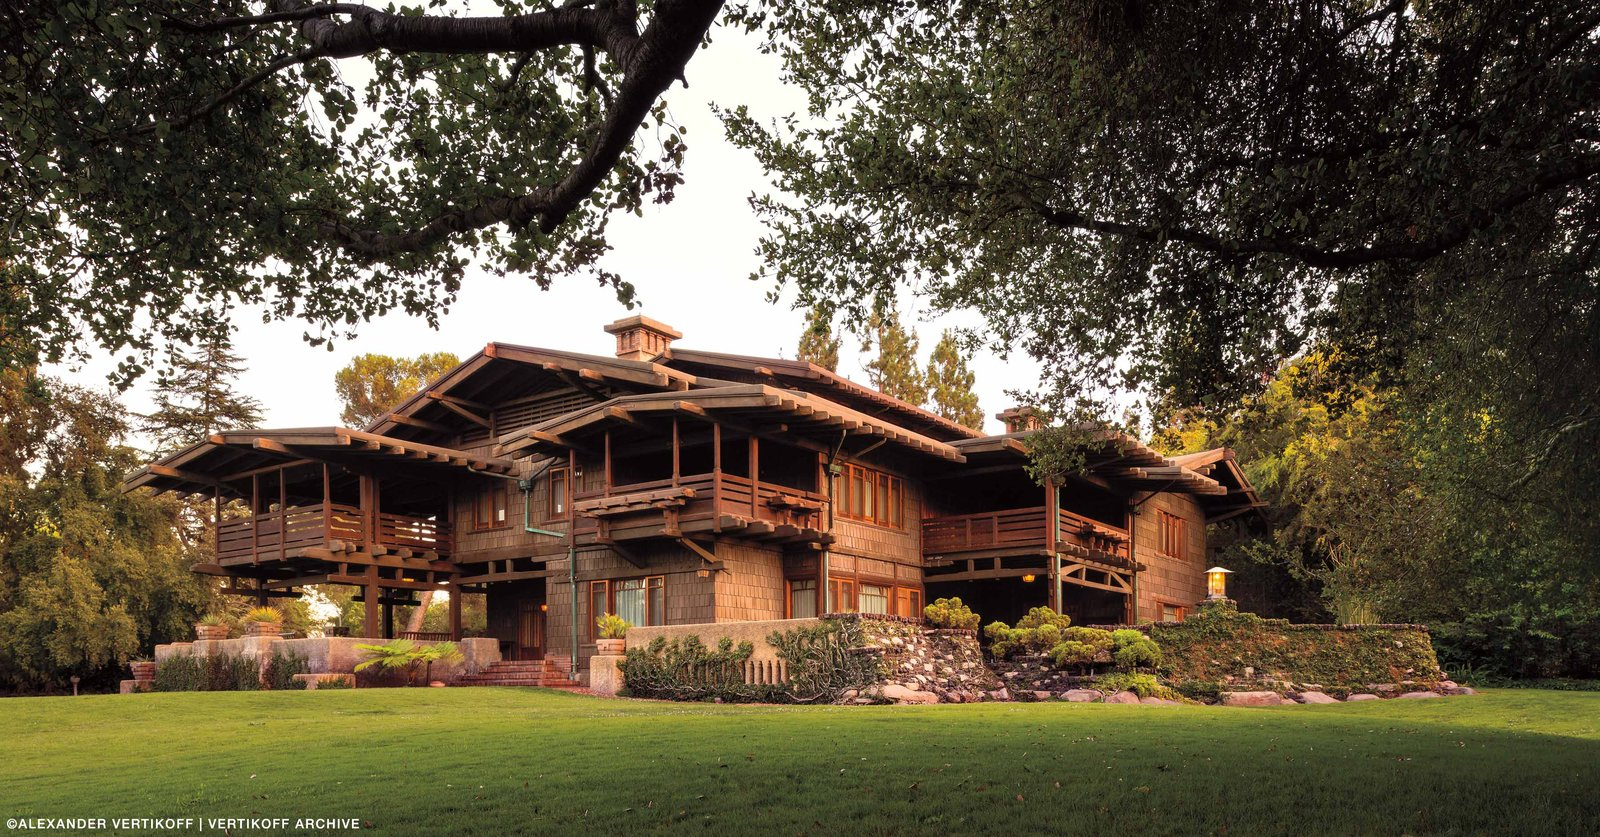 The Gamble House, which was built by the Greene Brothers for the Proctor and Gamble family in 1908, is known as one of the most authentic and well-preserved examples of the Arts and Crafts movement that spread like a wildfire in the Los Angeles neighborhood of Pasadena. Every detail of the the house was crafted by hand with an abundance of natural materials. Photo by Alexander Vertikoff, Courtesy of the Gamble HouseUltimate bungalows Tagged: Exterior, House, Wood Siding Material, and Gable RoofLine.  Photo 2 of 8 in Iconic Perspectives: Greene & Greene's Gamble House